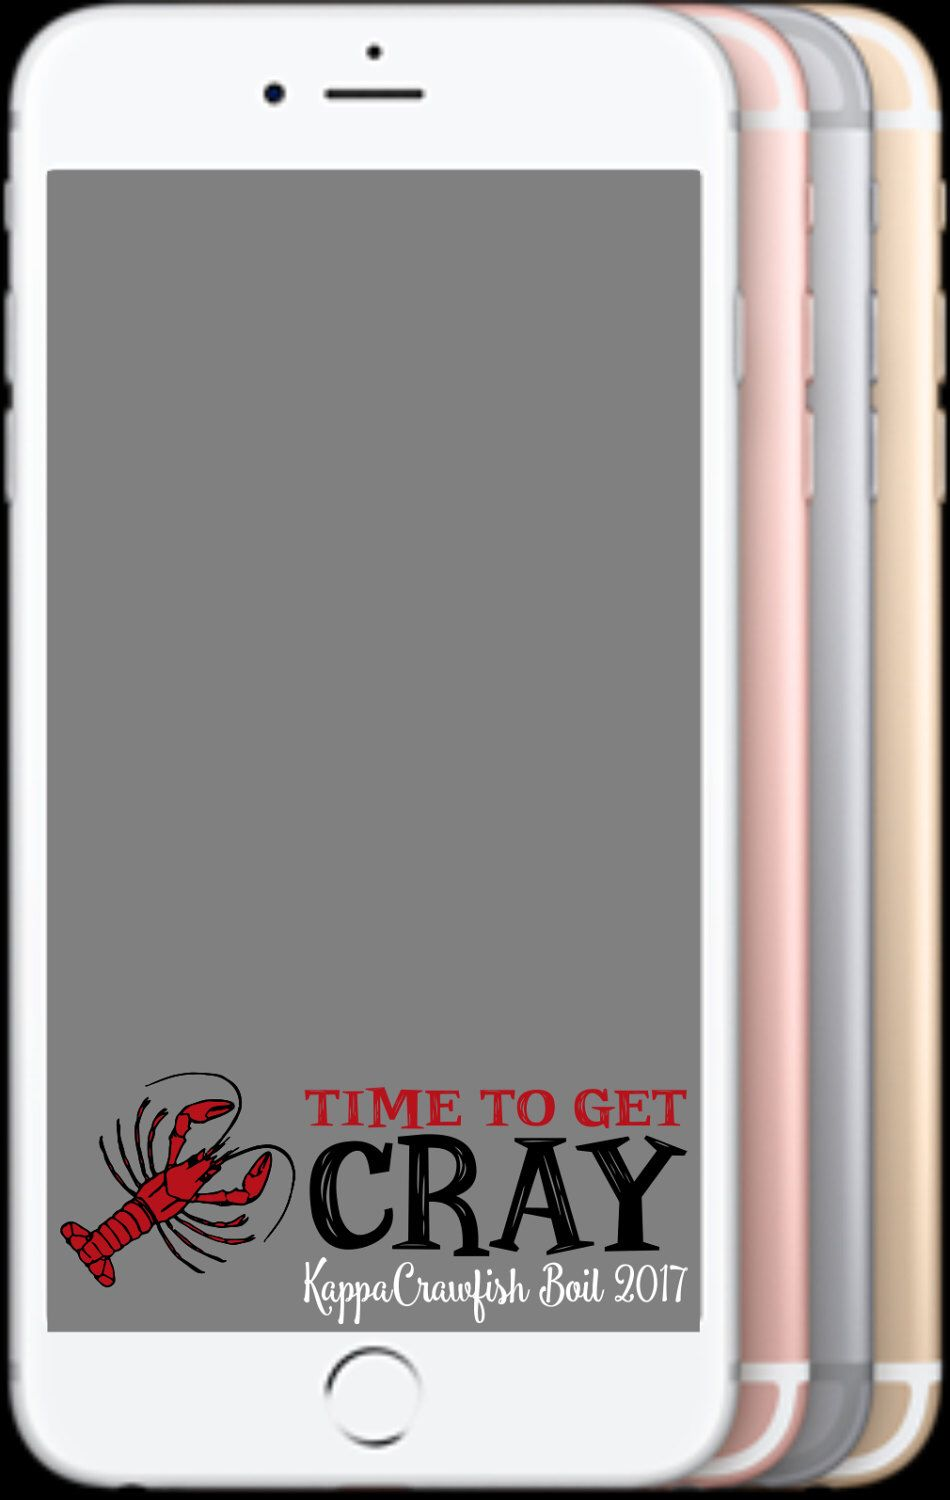 hight resolution of custom event crawfish boils sorority fraternity birthday day reunion snapchat geofilter time to